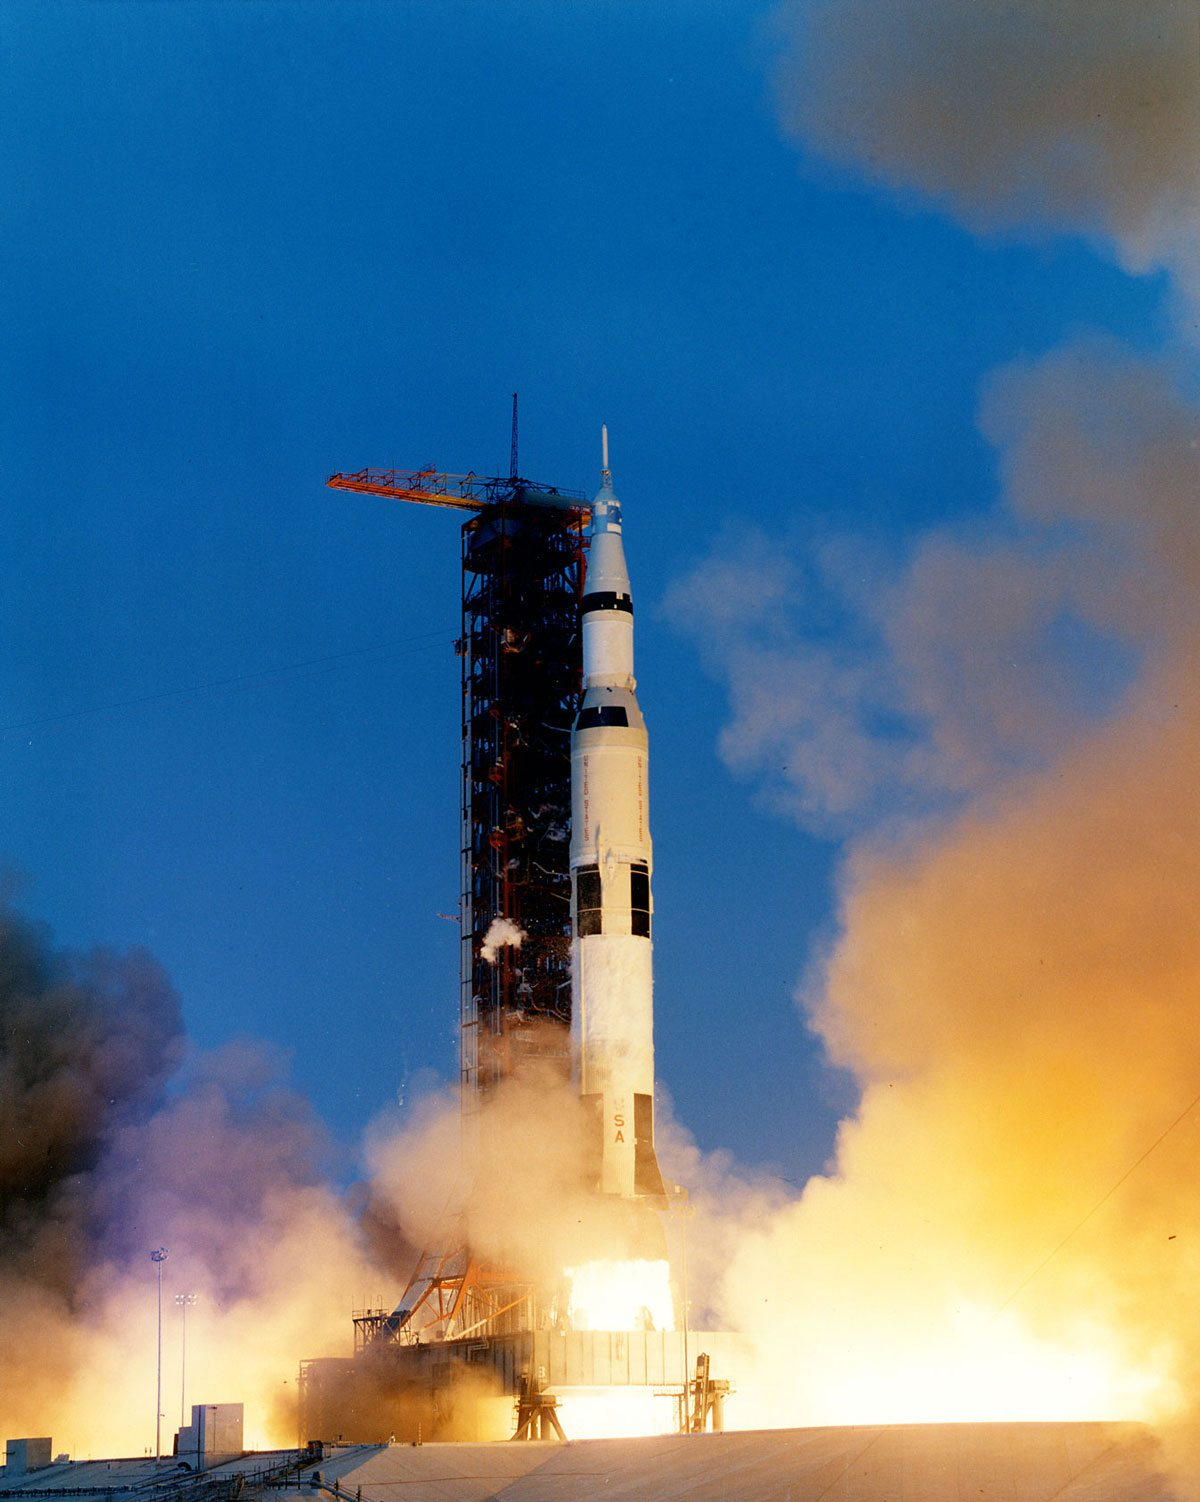 Apollo 13 lifts off on April 10, 1970.